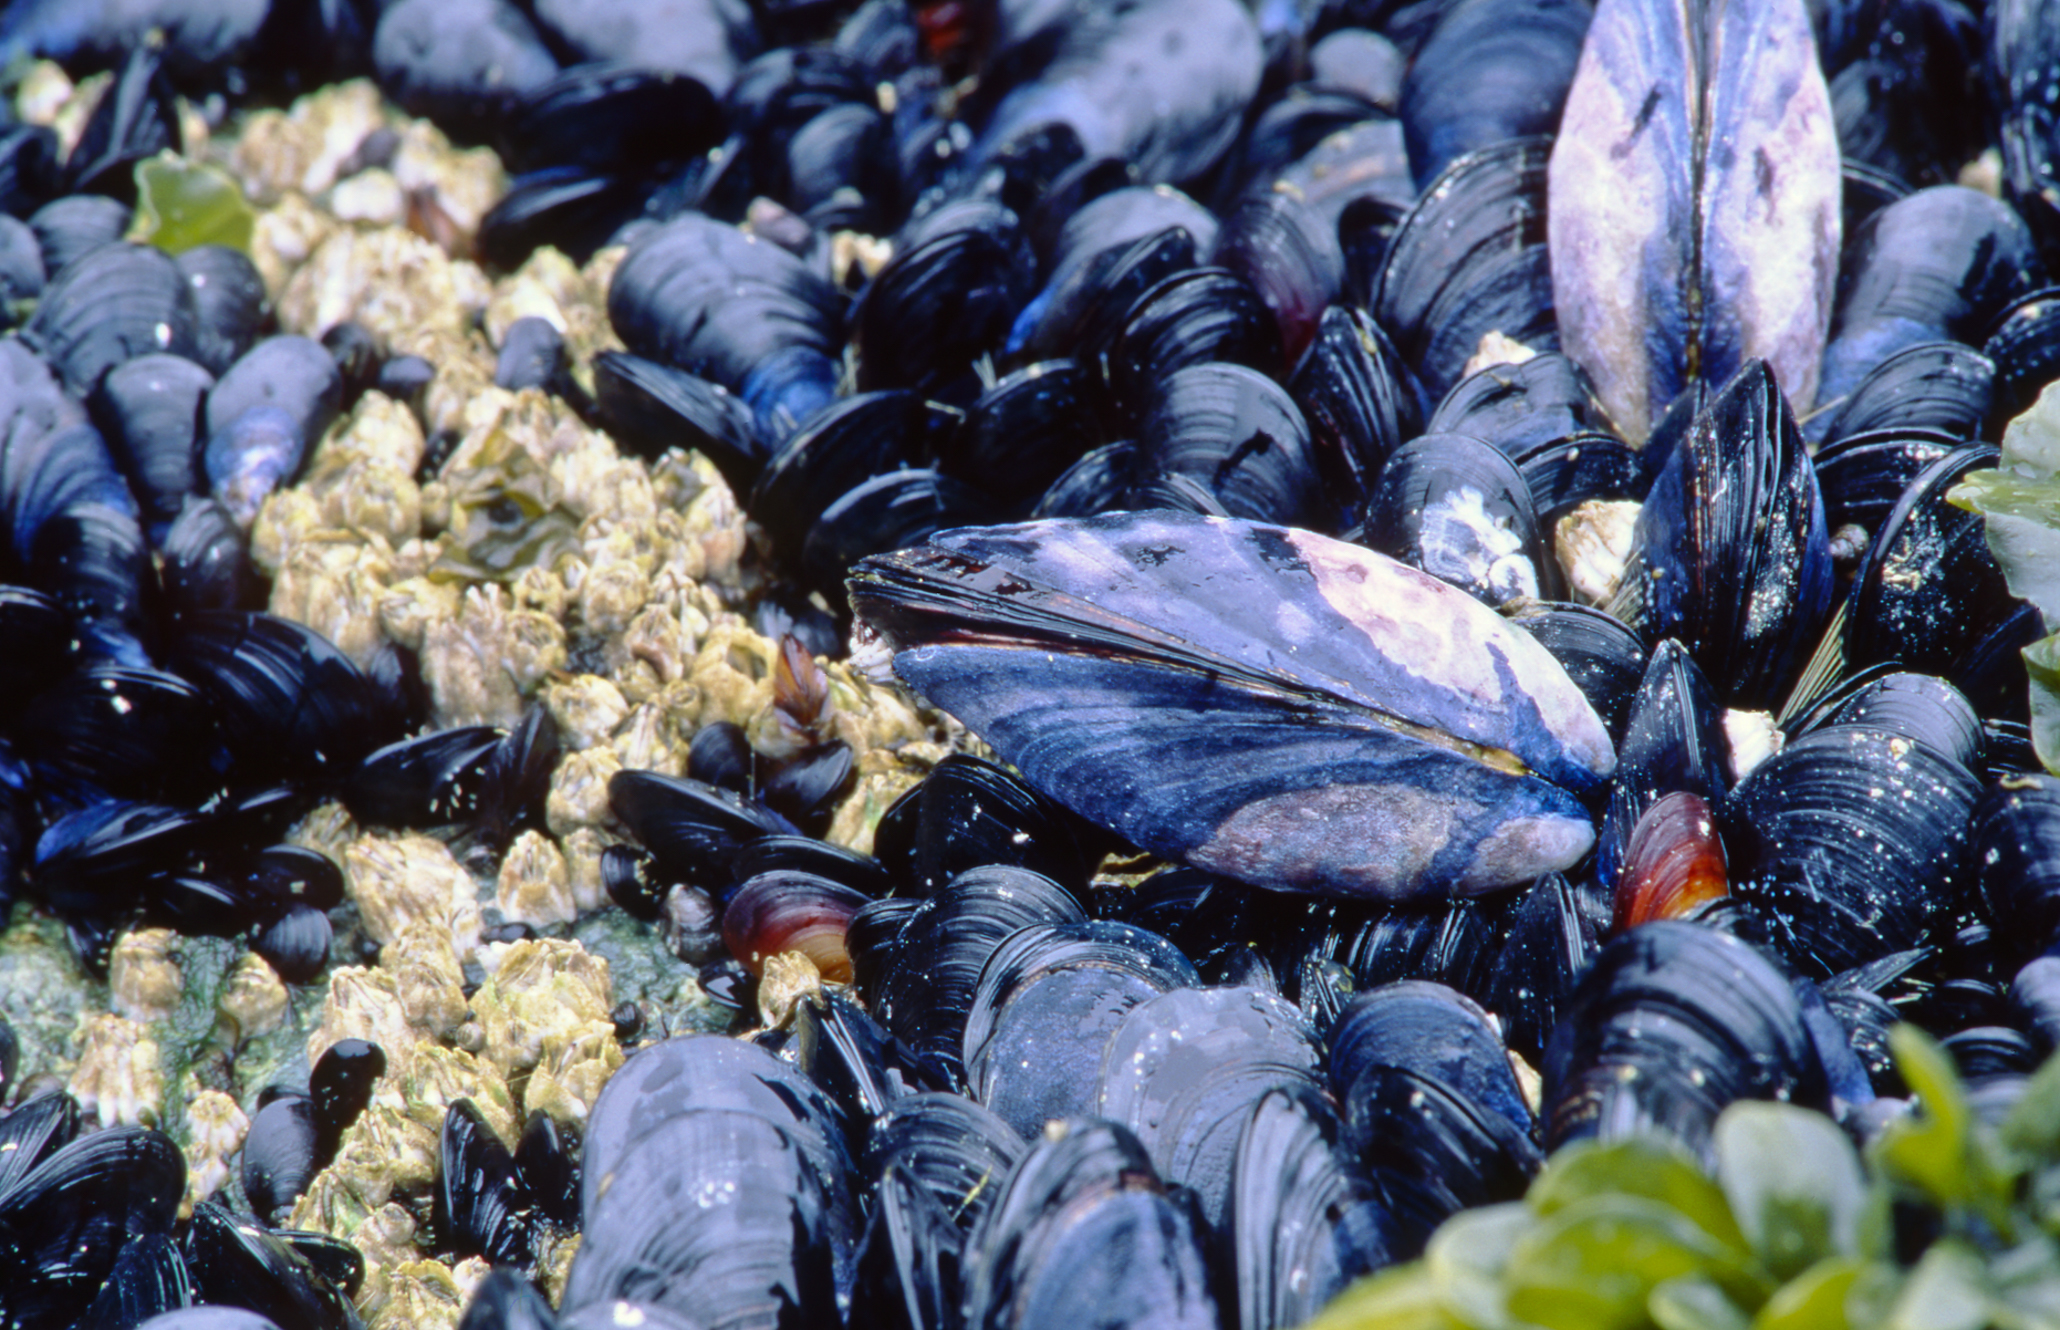 indigo hued muscles clustered in a bed of seaweed and barnacles